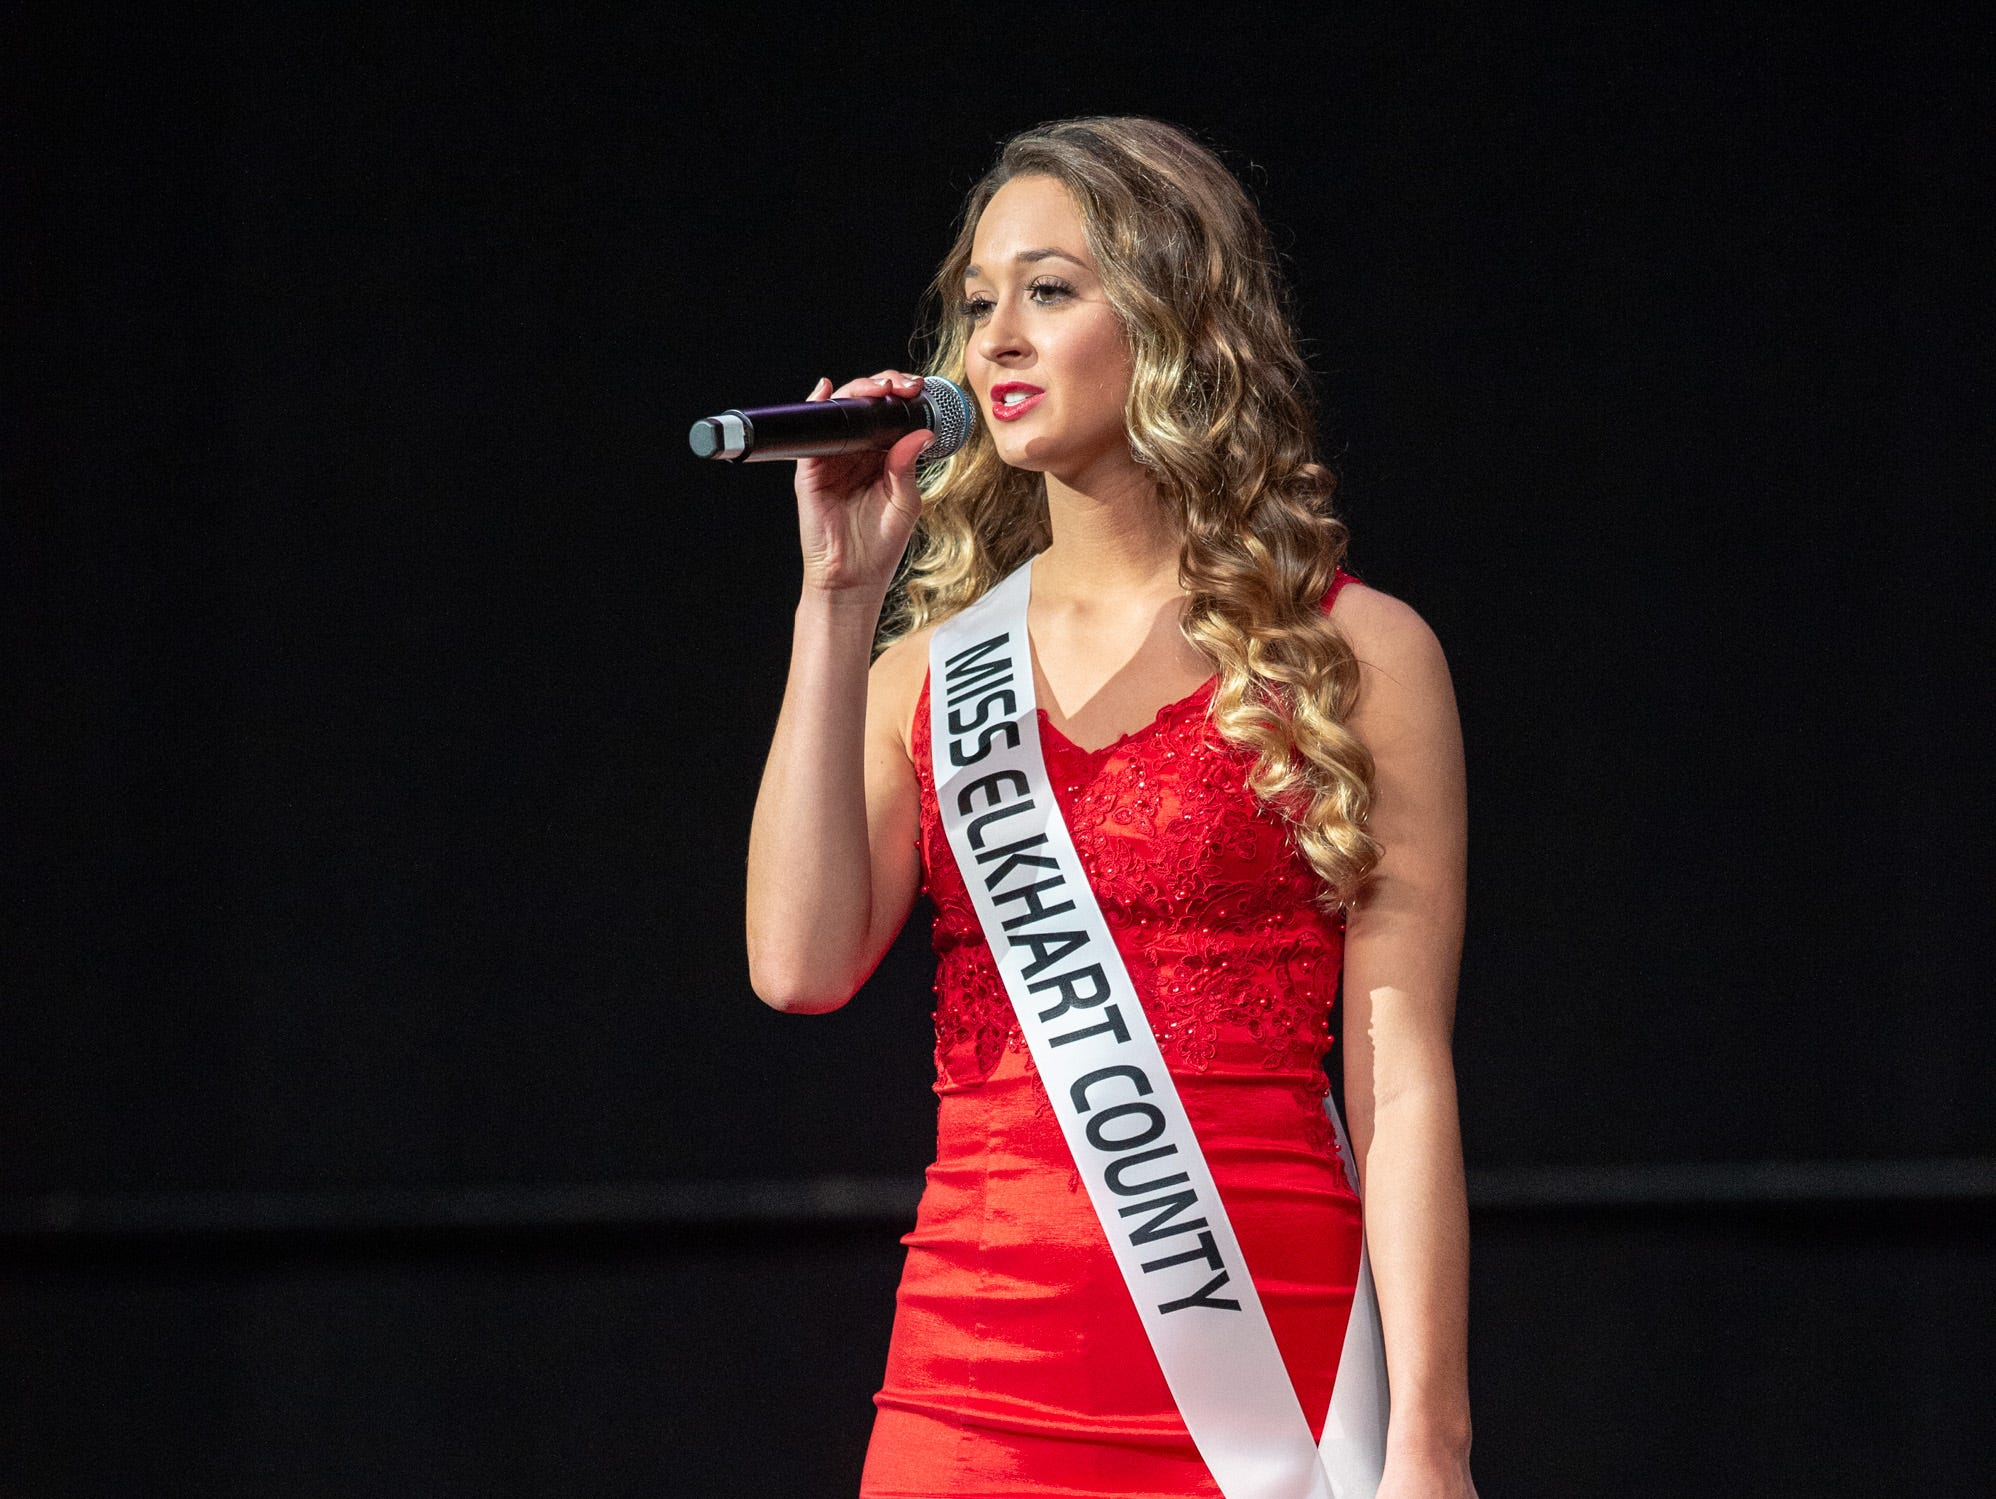 """Miss Elkhart County, Emily Yoder, was given the word """"empowered"""" to use in a spontaneous response during the 61st Indiana State Fair Queen Pageant at the Indiana State Fairgrounds in Indianapolis on Sunday, Jan. 6, 2019."""